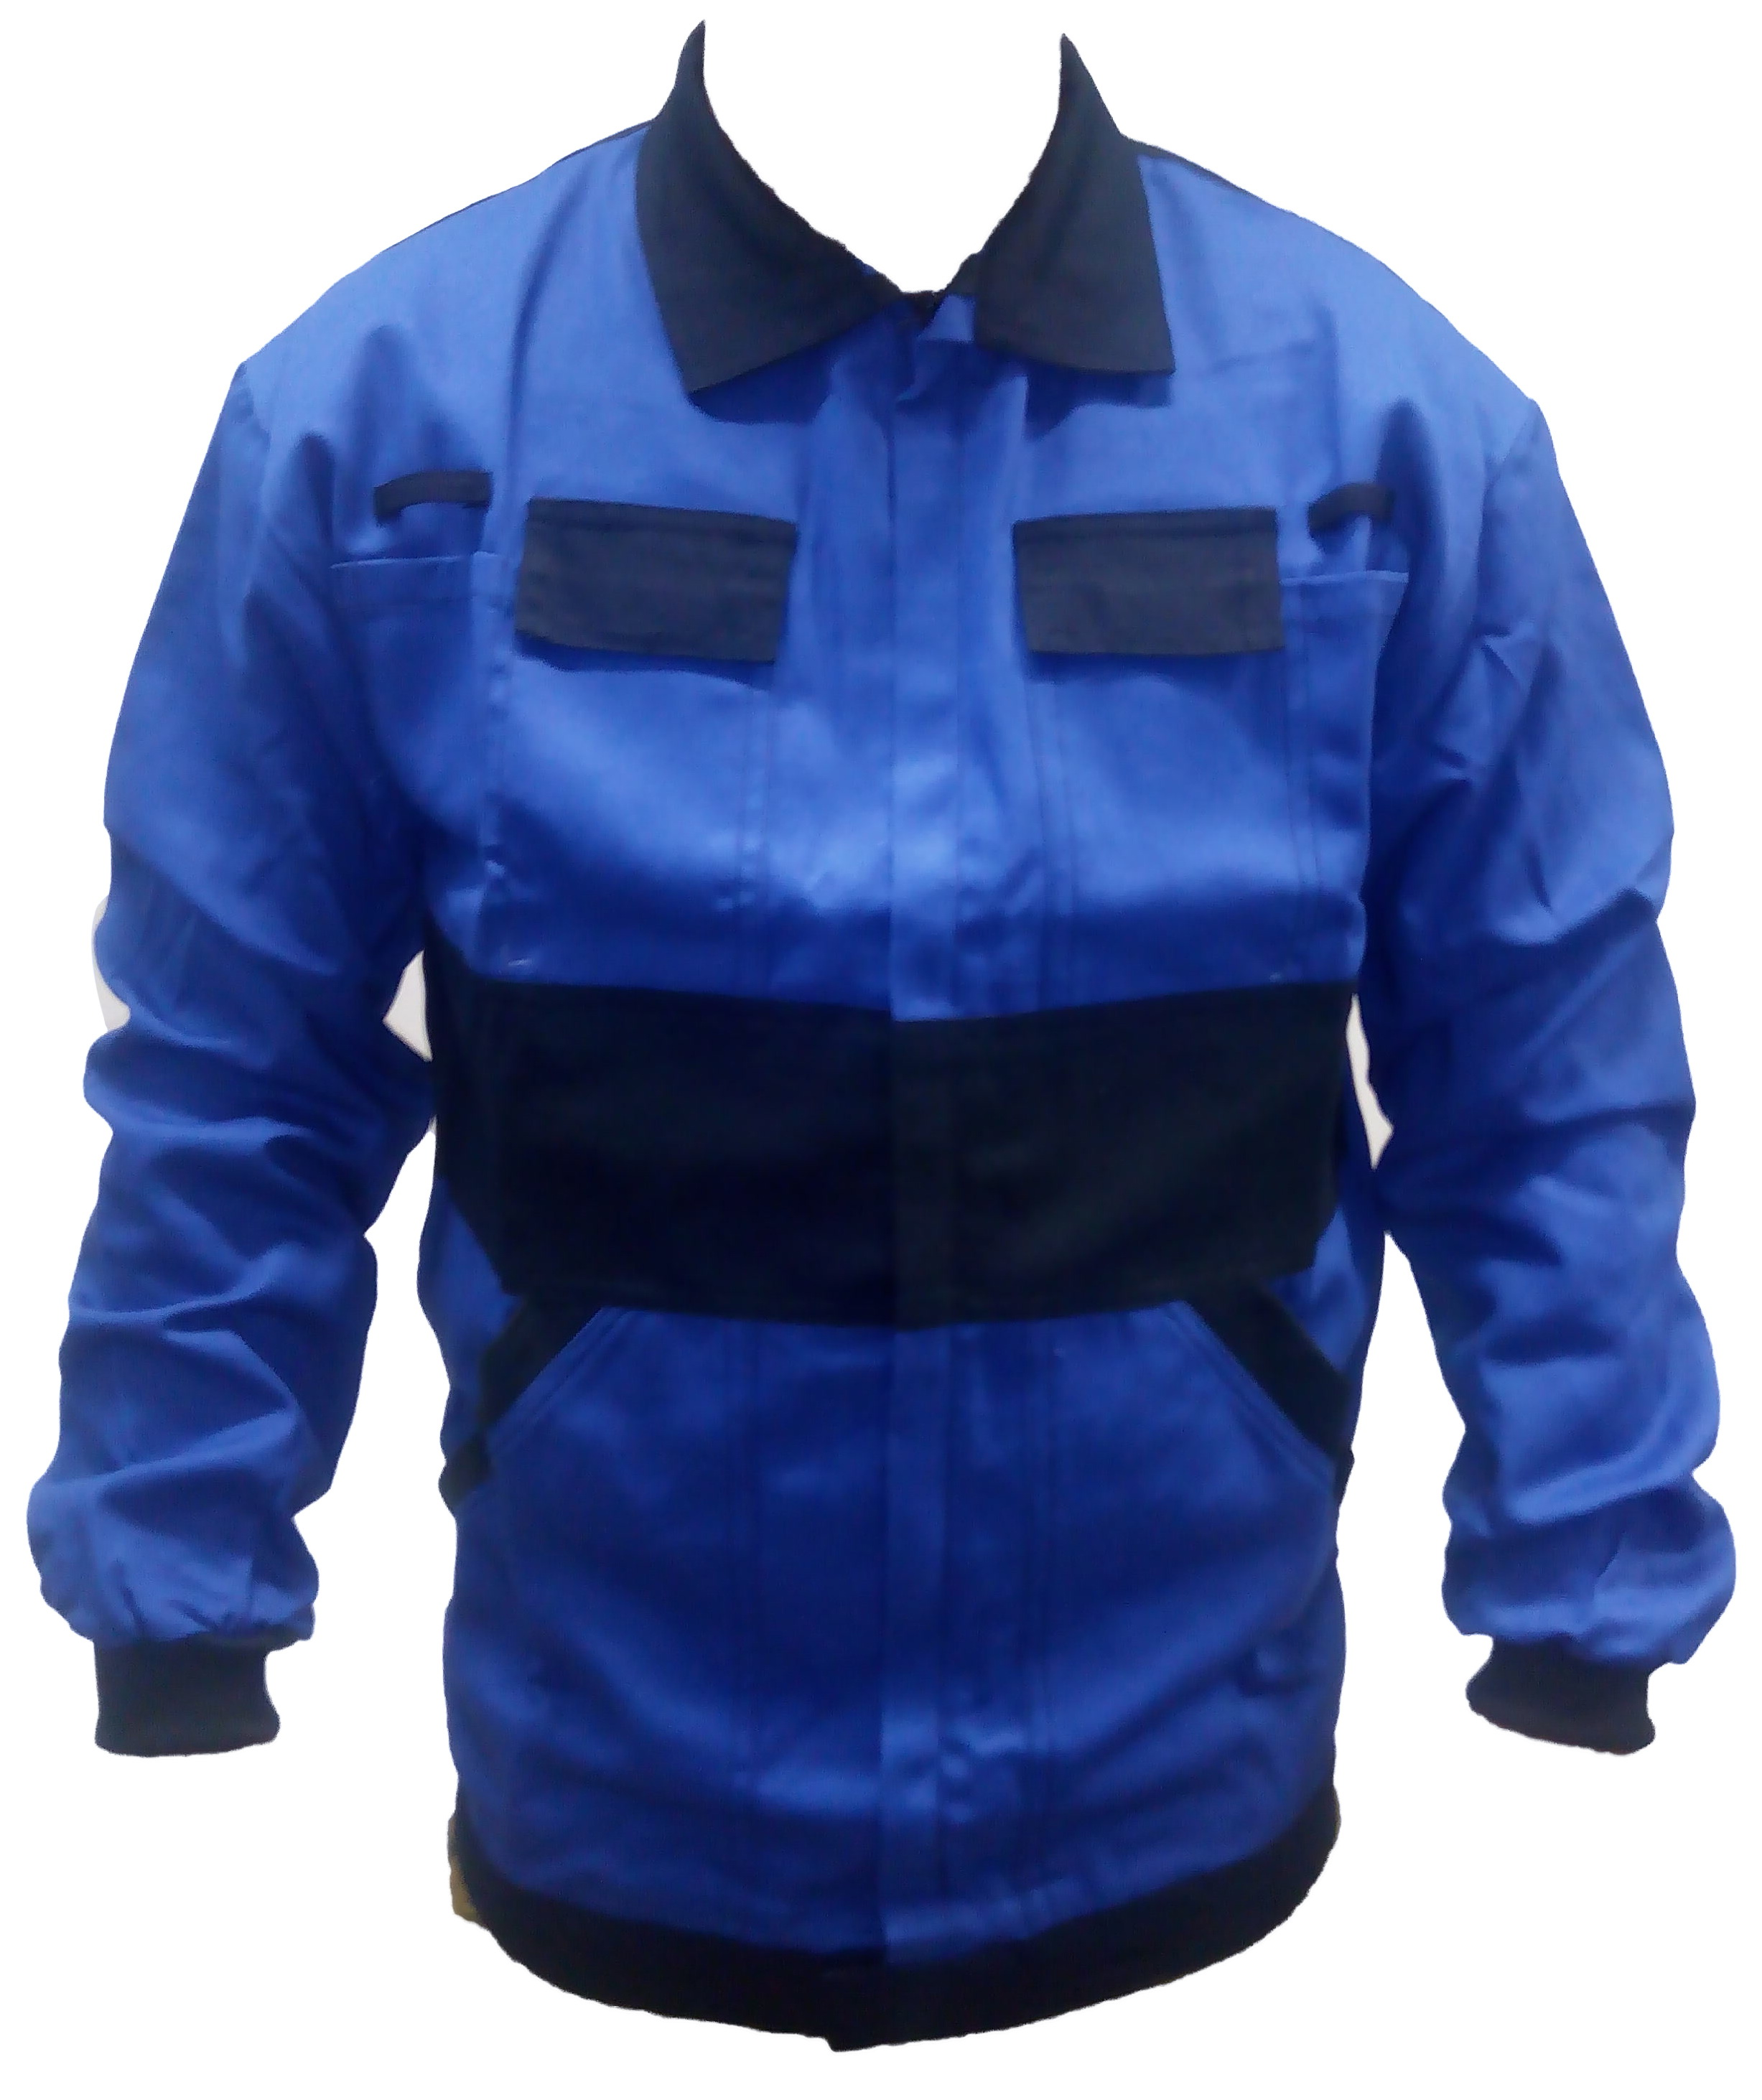 Prime DEX 101-006 Blue - Black Jacket